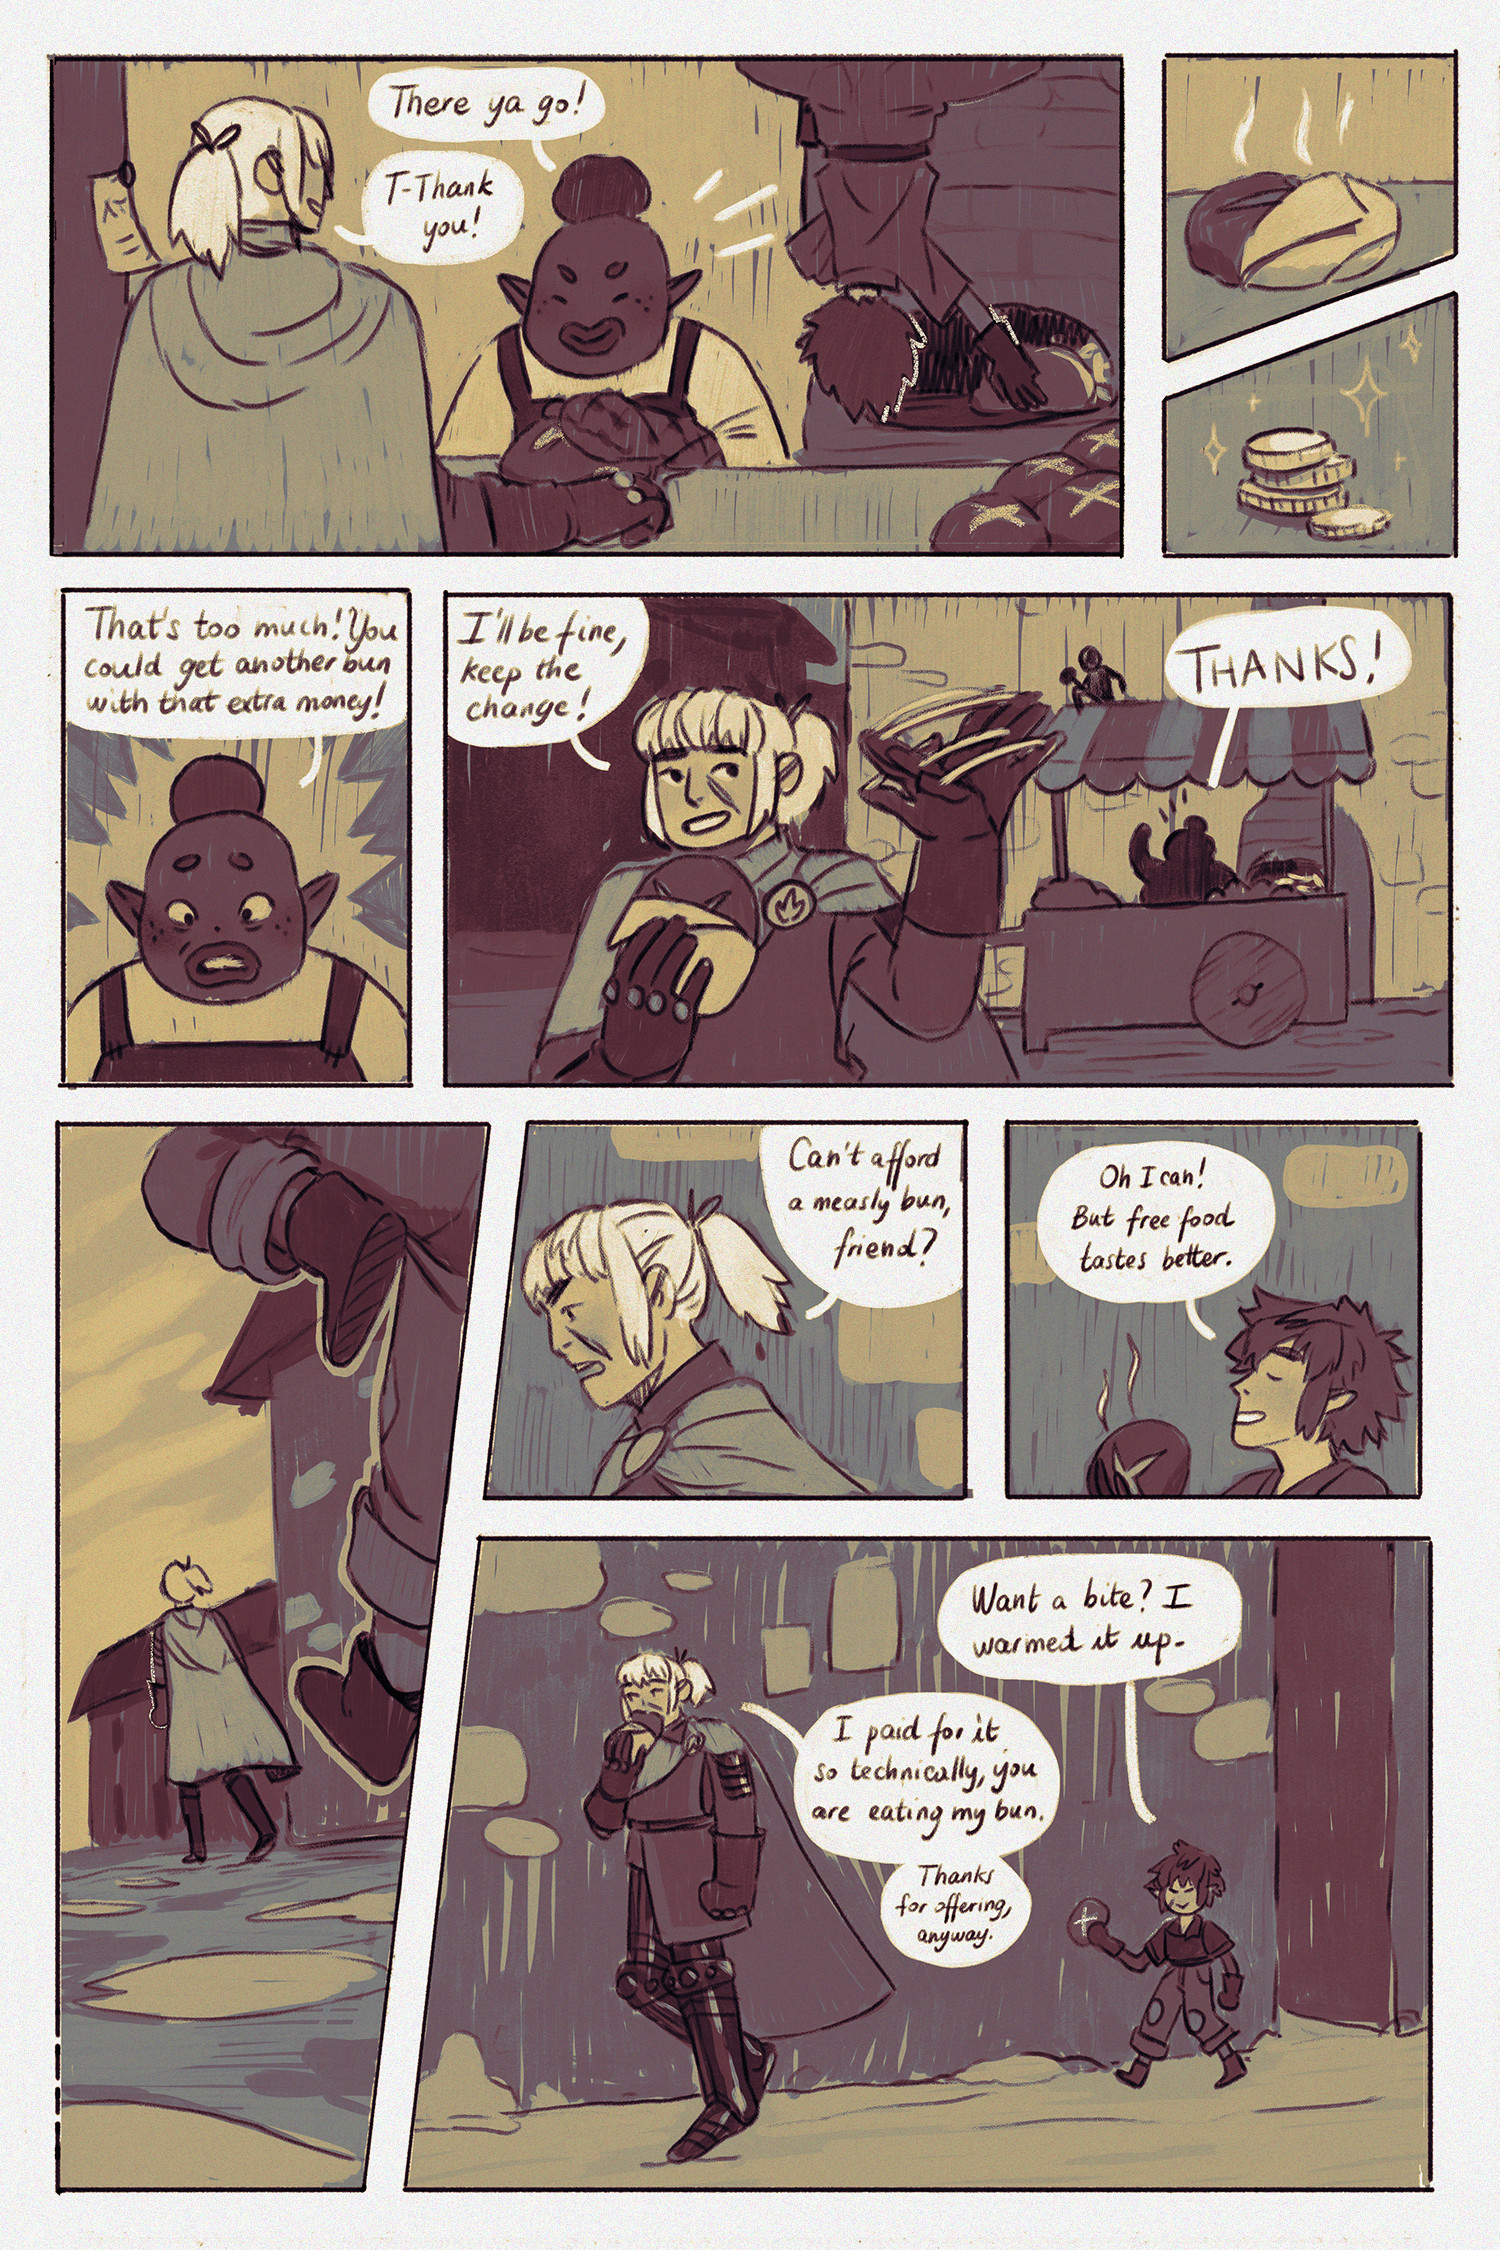 Clementine frere thief pg2 color 1500